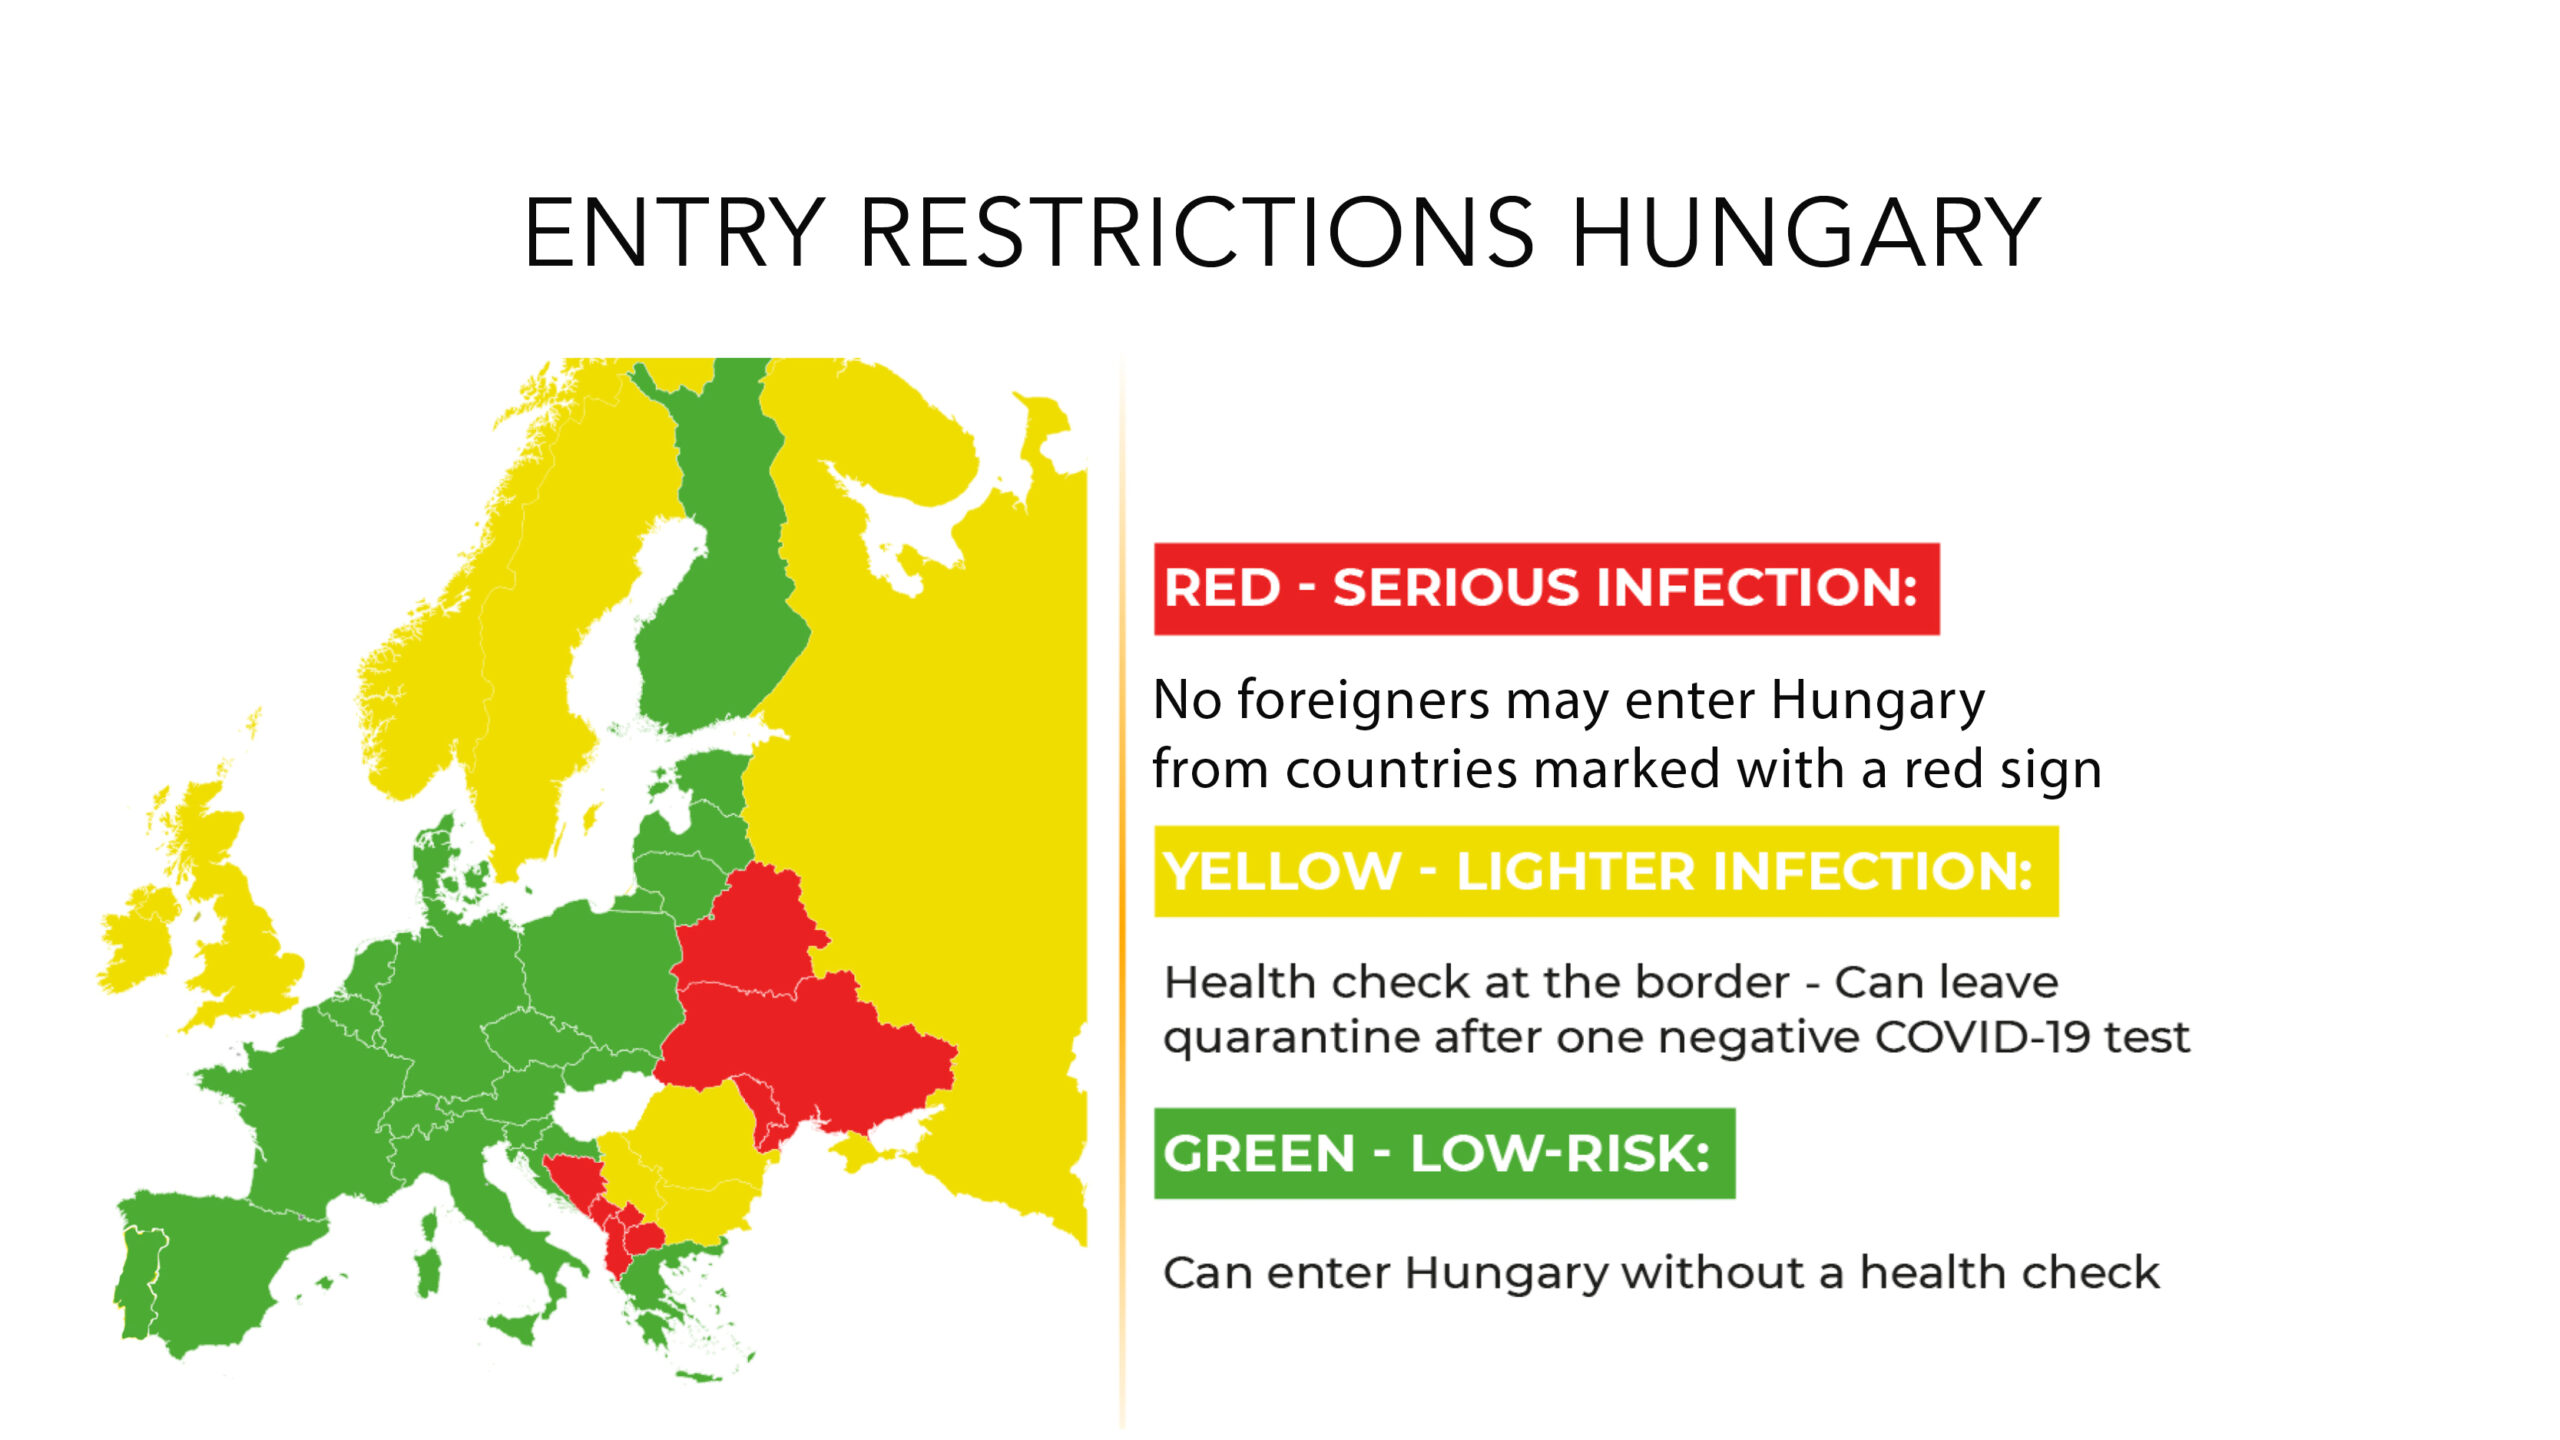 hungary covid-19 entry restrictions